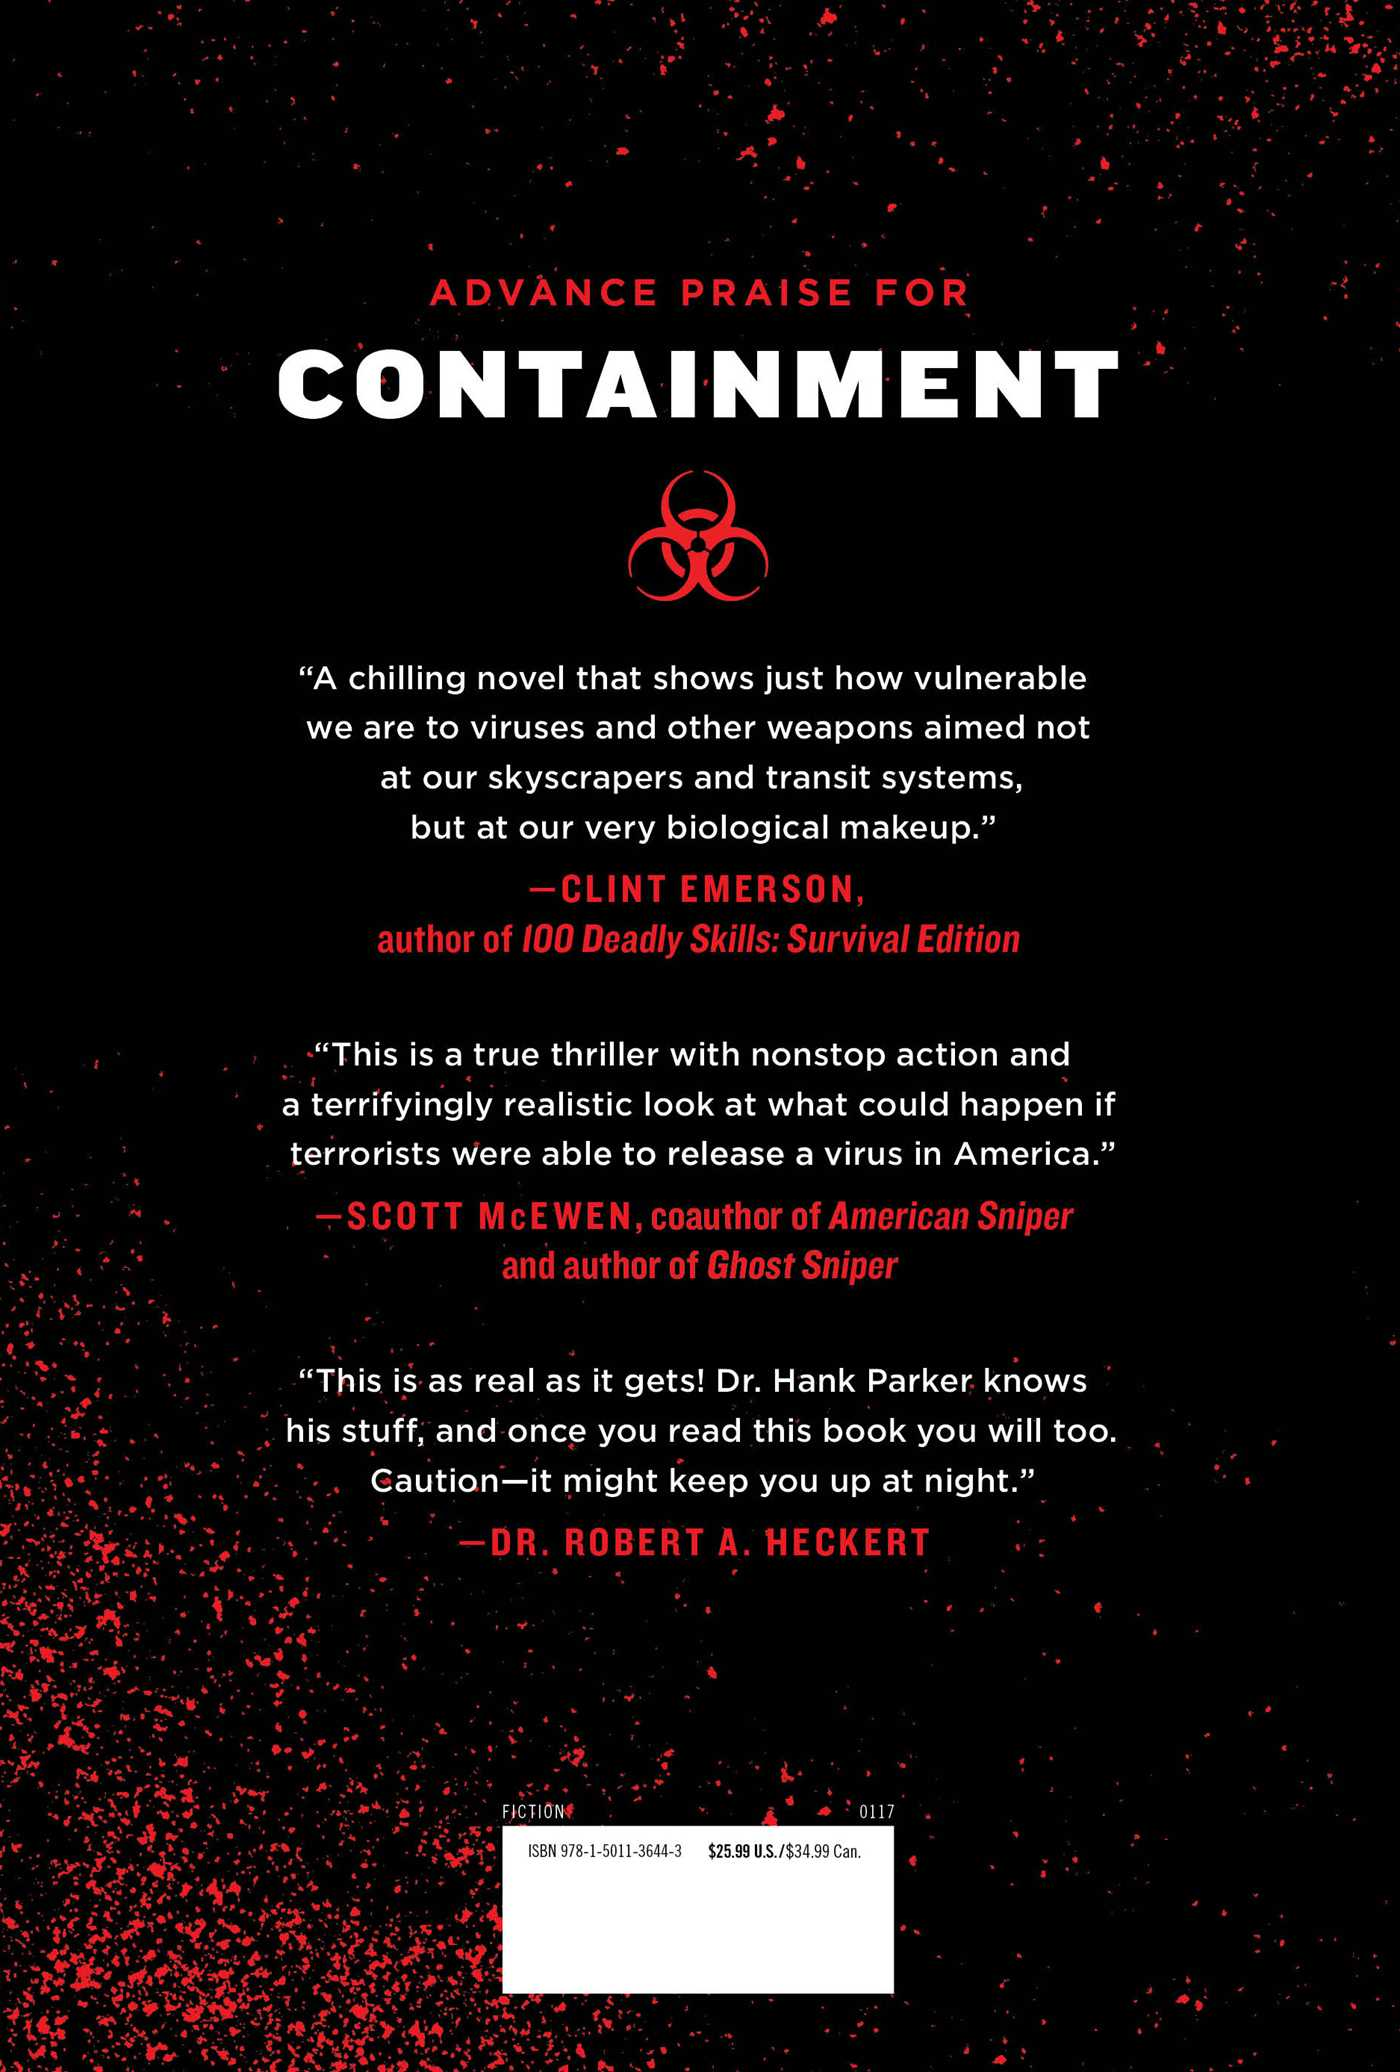 Containment 9781501136443 hr back